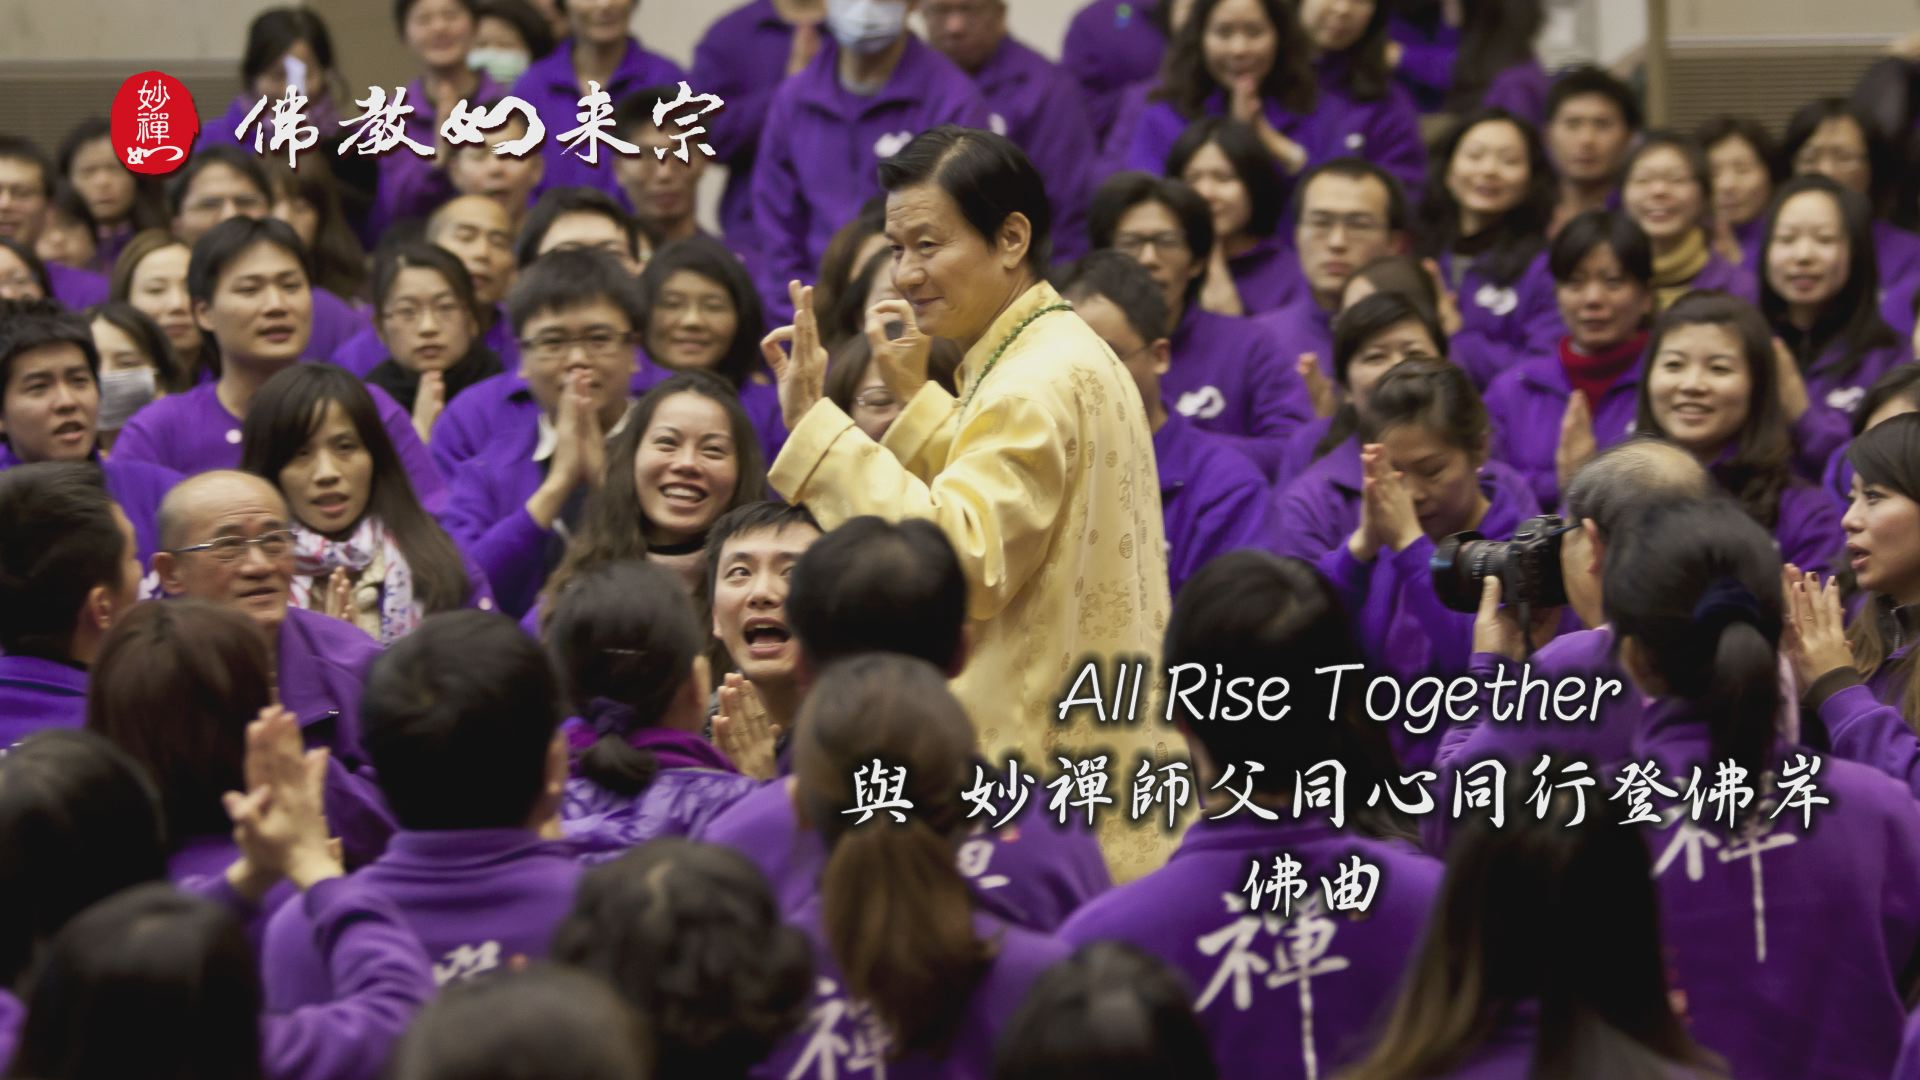 All Rise Together 佛曲